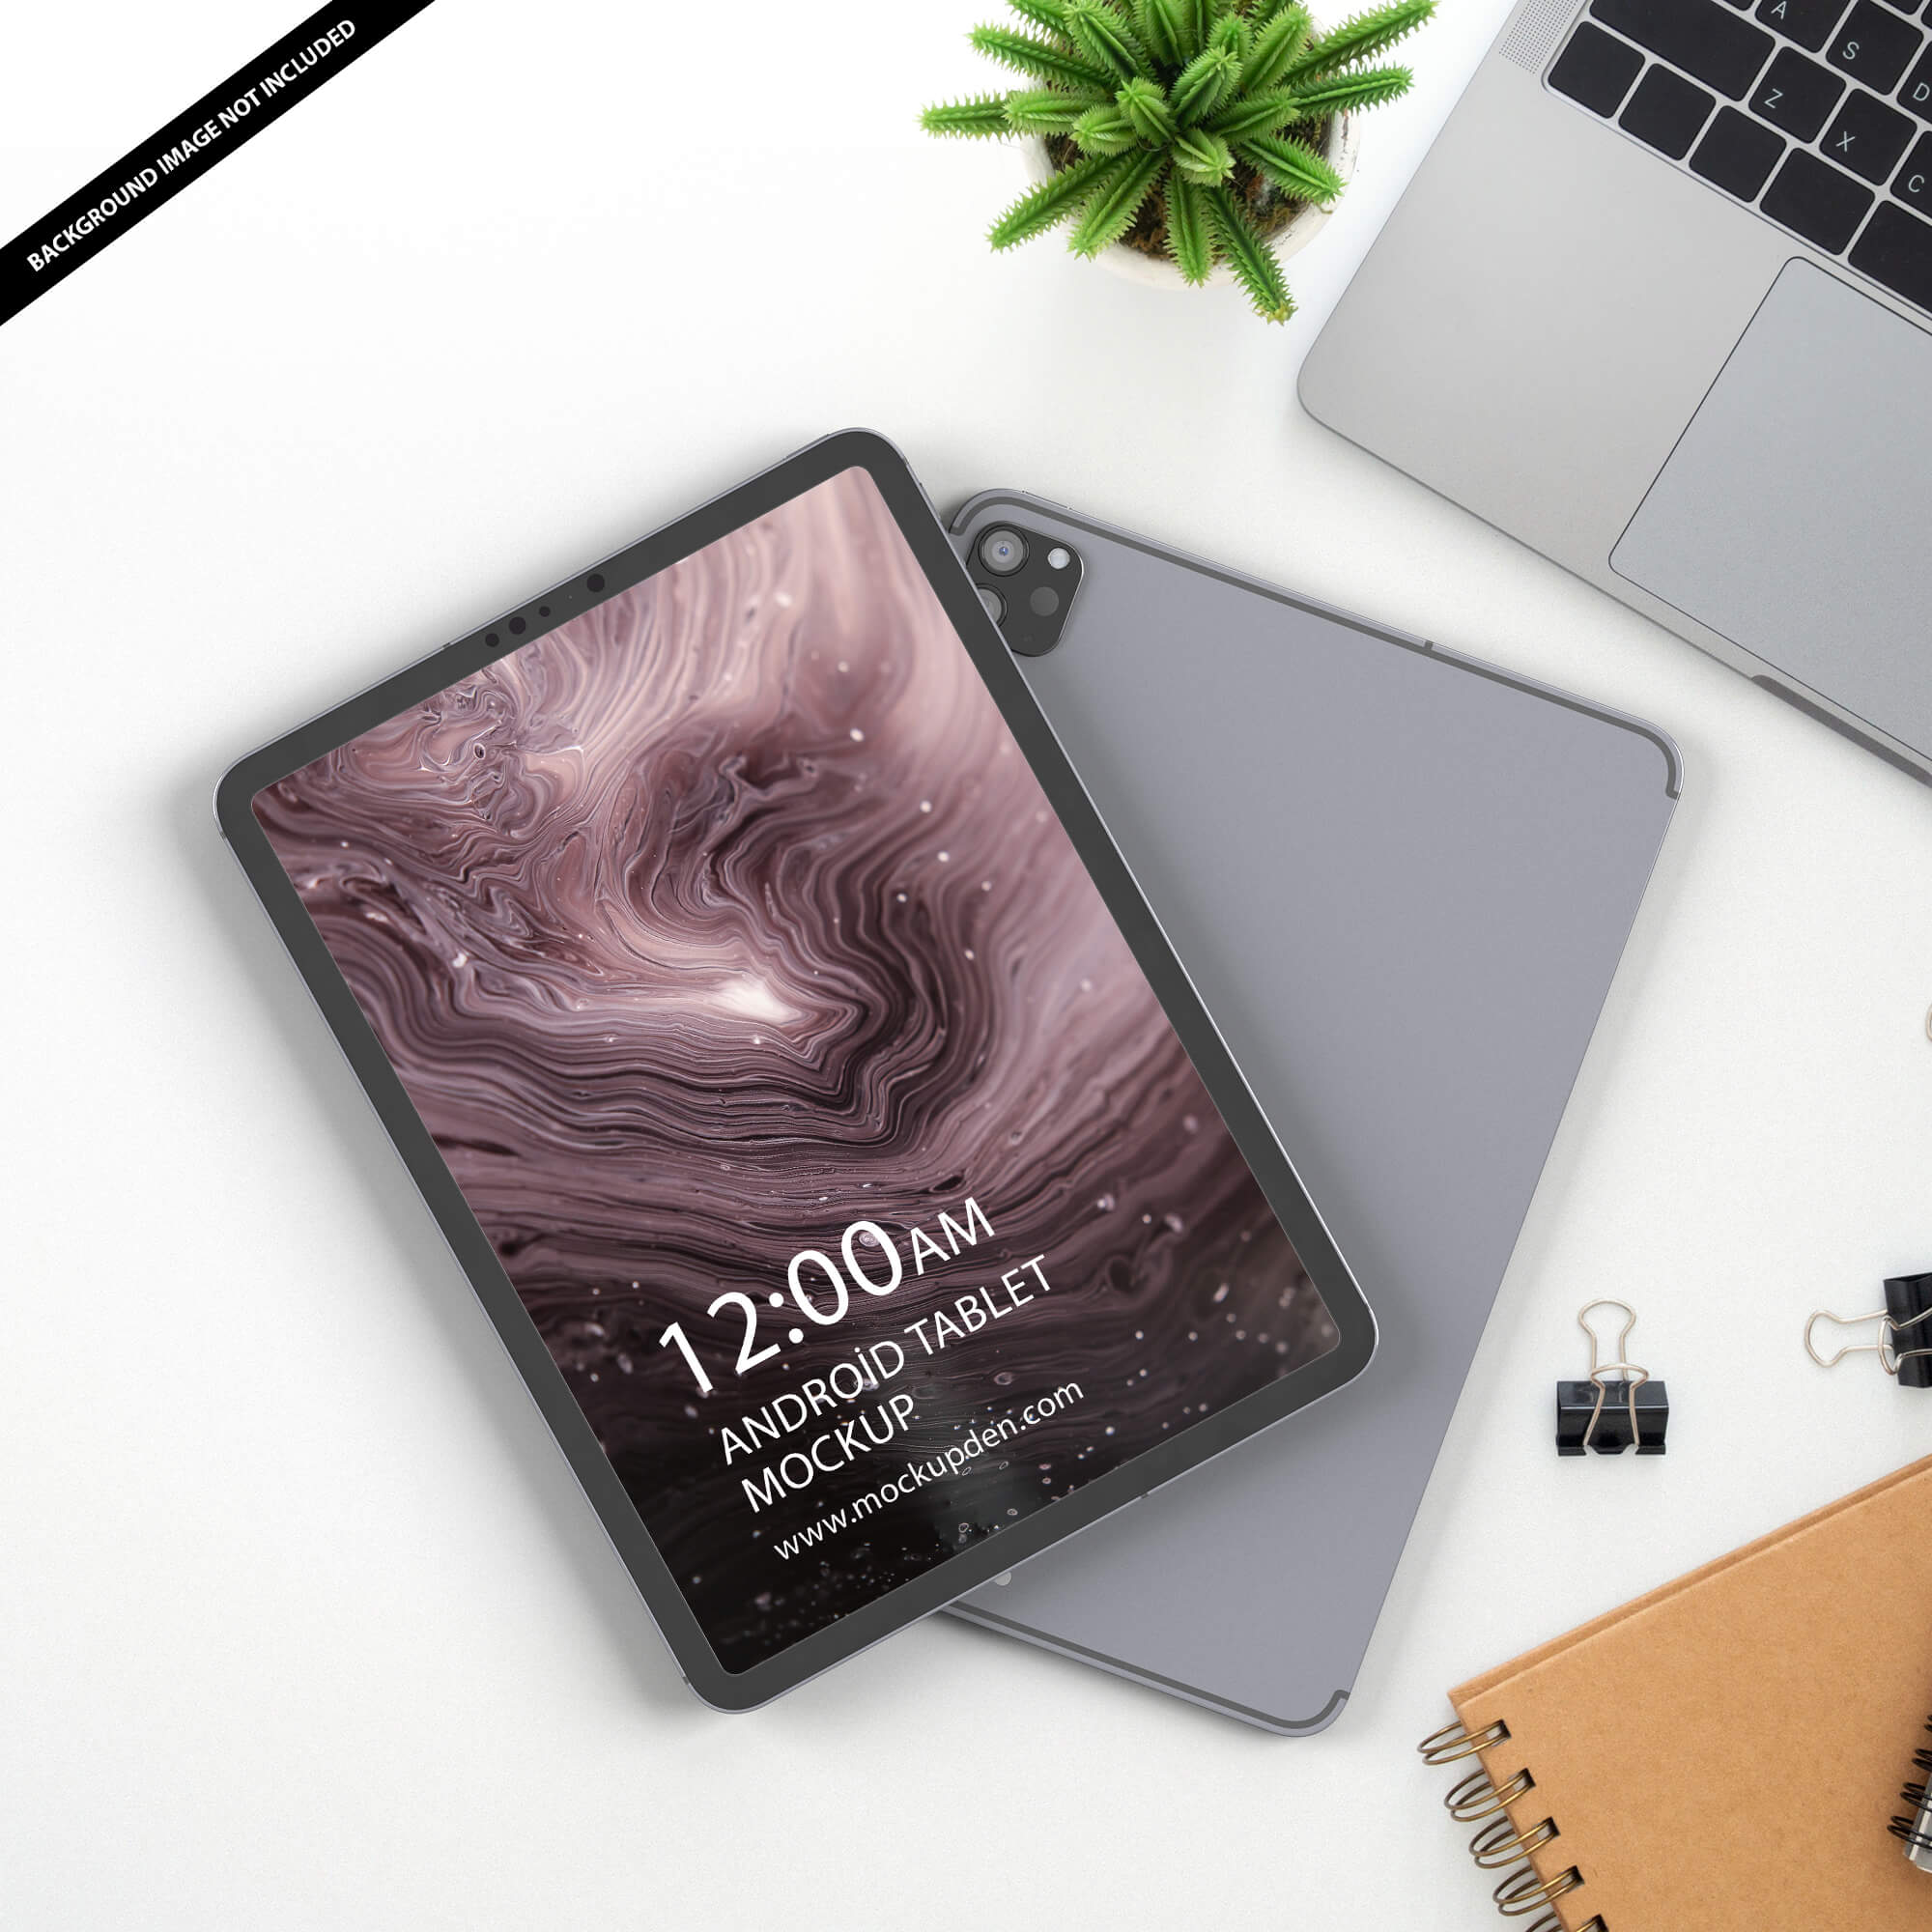 Free Android Tablet Mockup PSD Template (1)